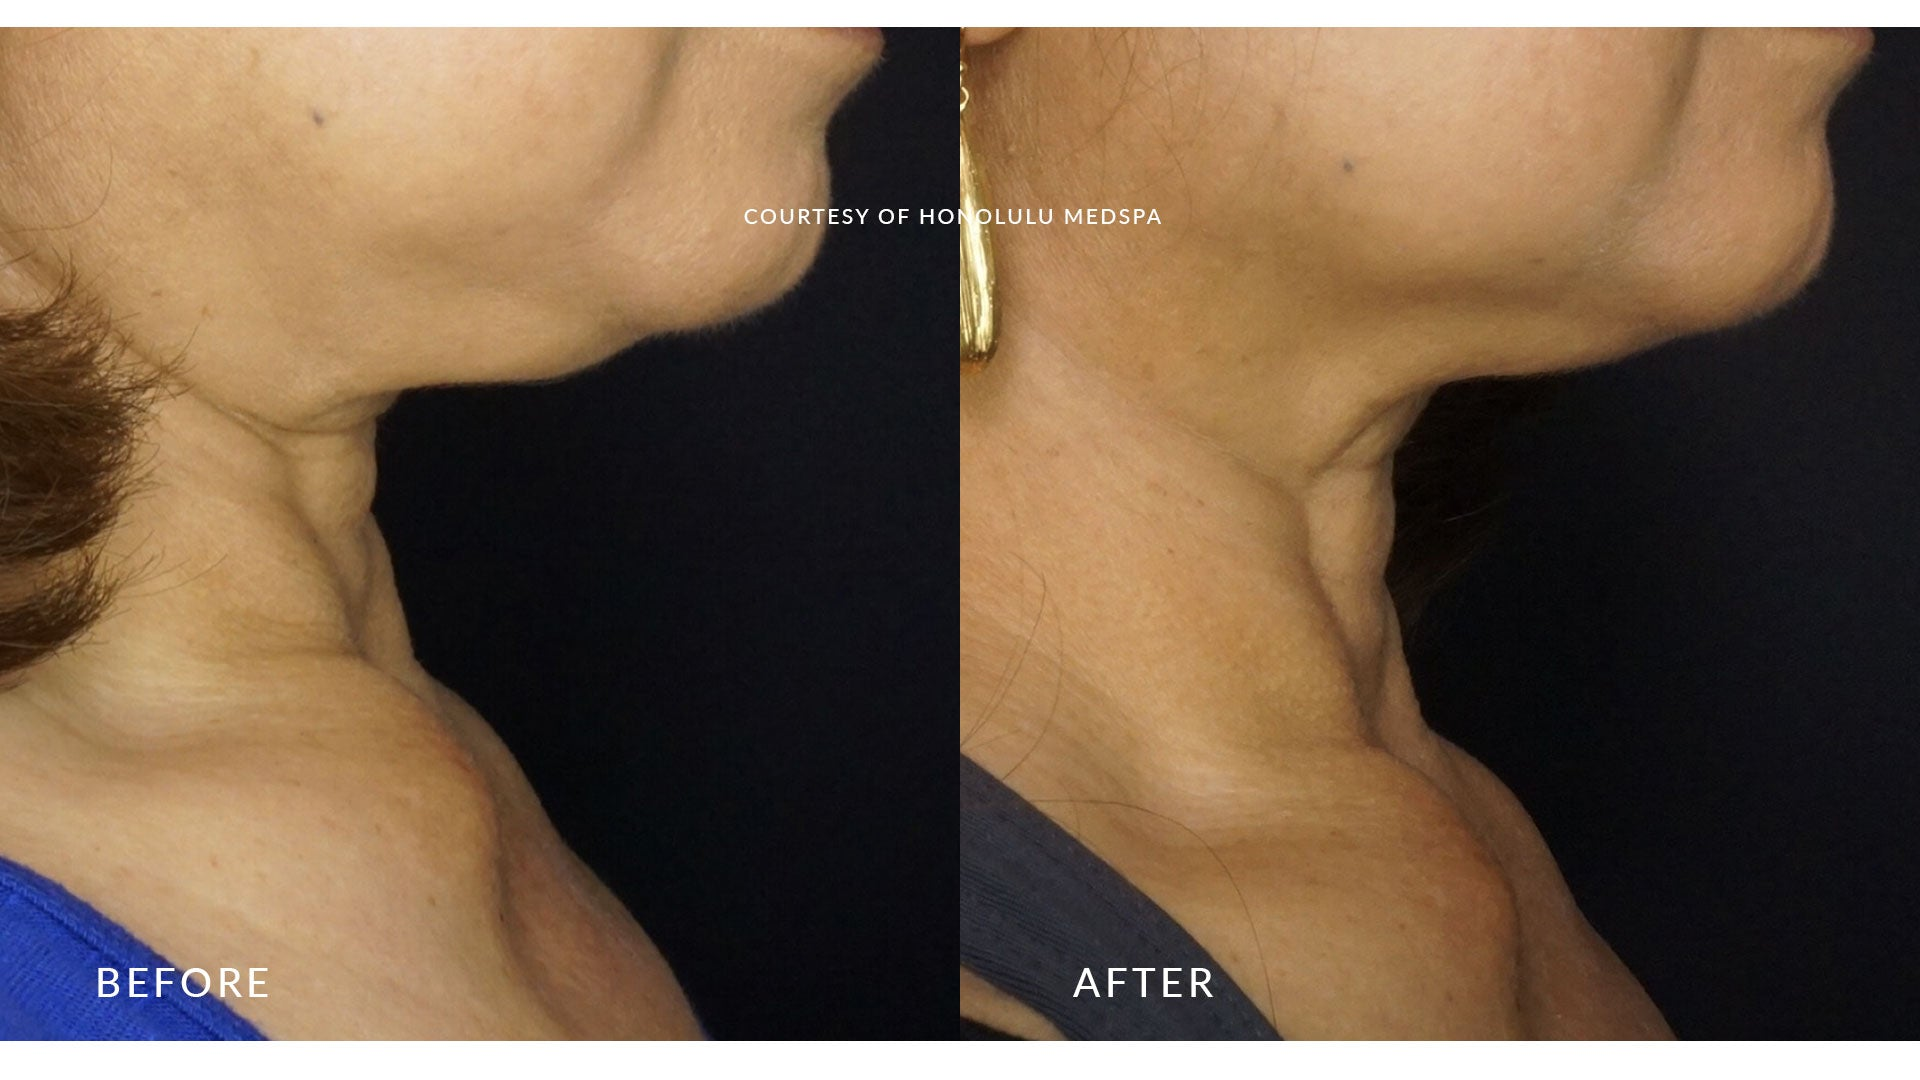 FOTONA 4D LASER FACIAL REJUVENATION - Honolulu MedSpa